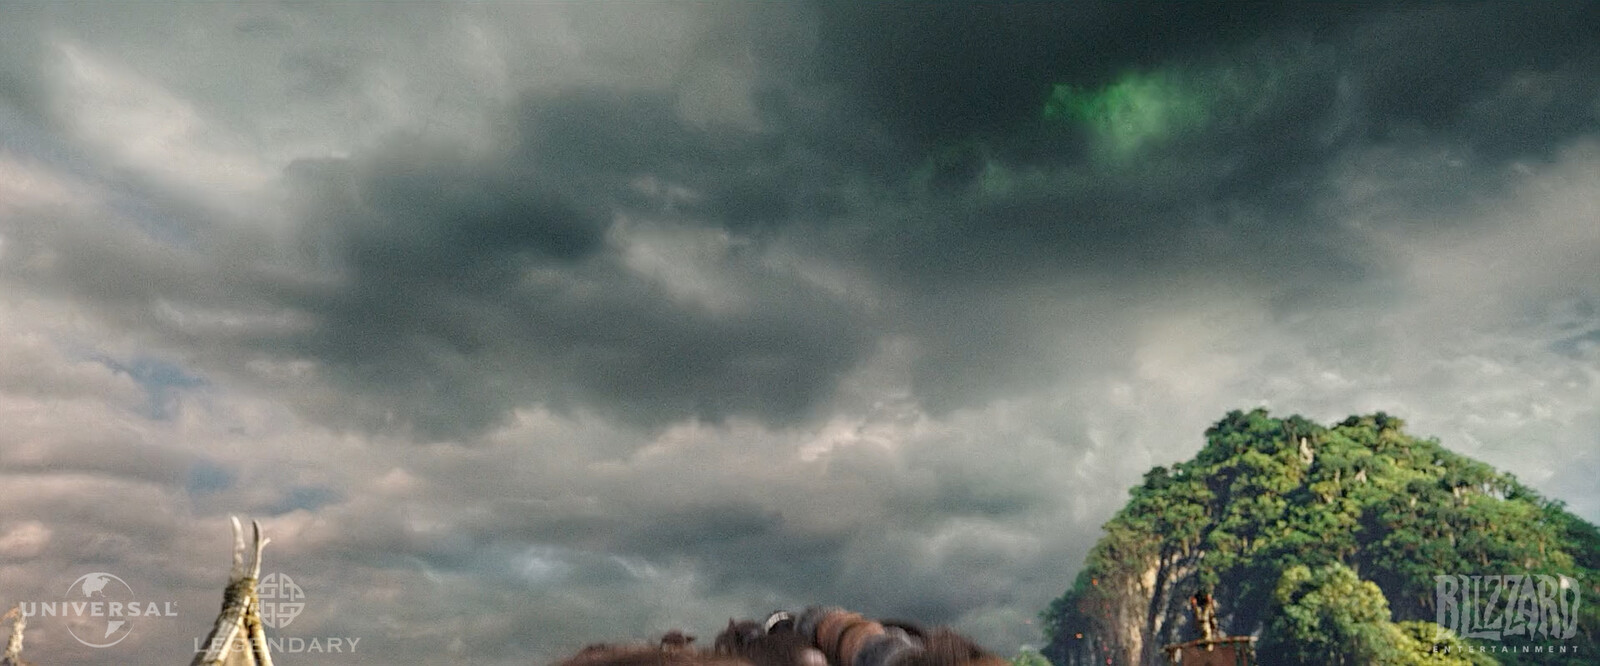 Animated sky with flashing greens and CG environment.